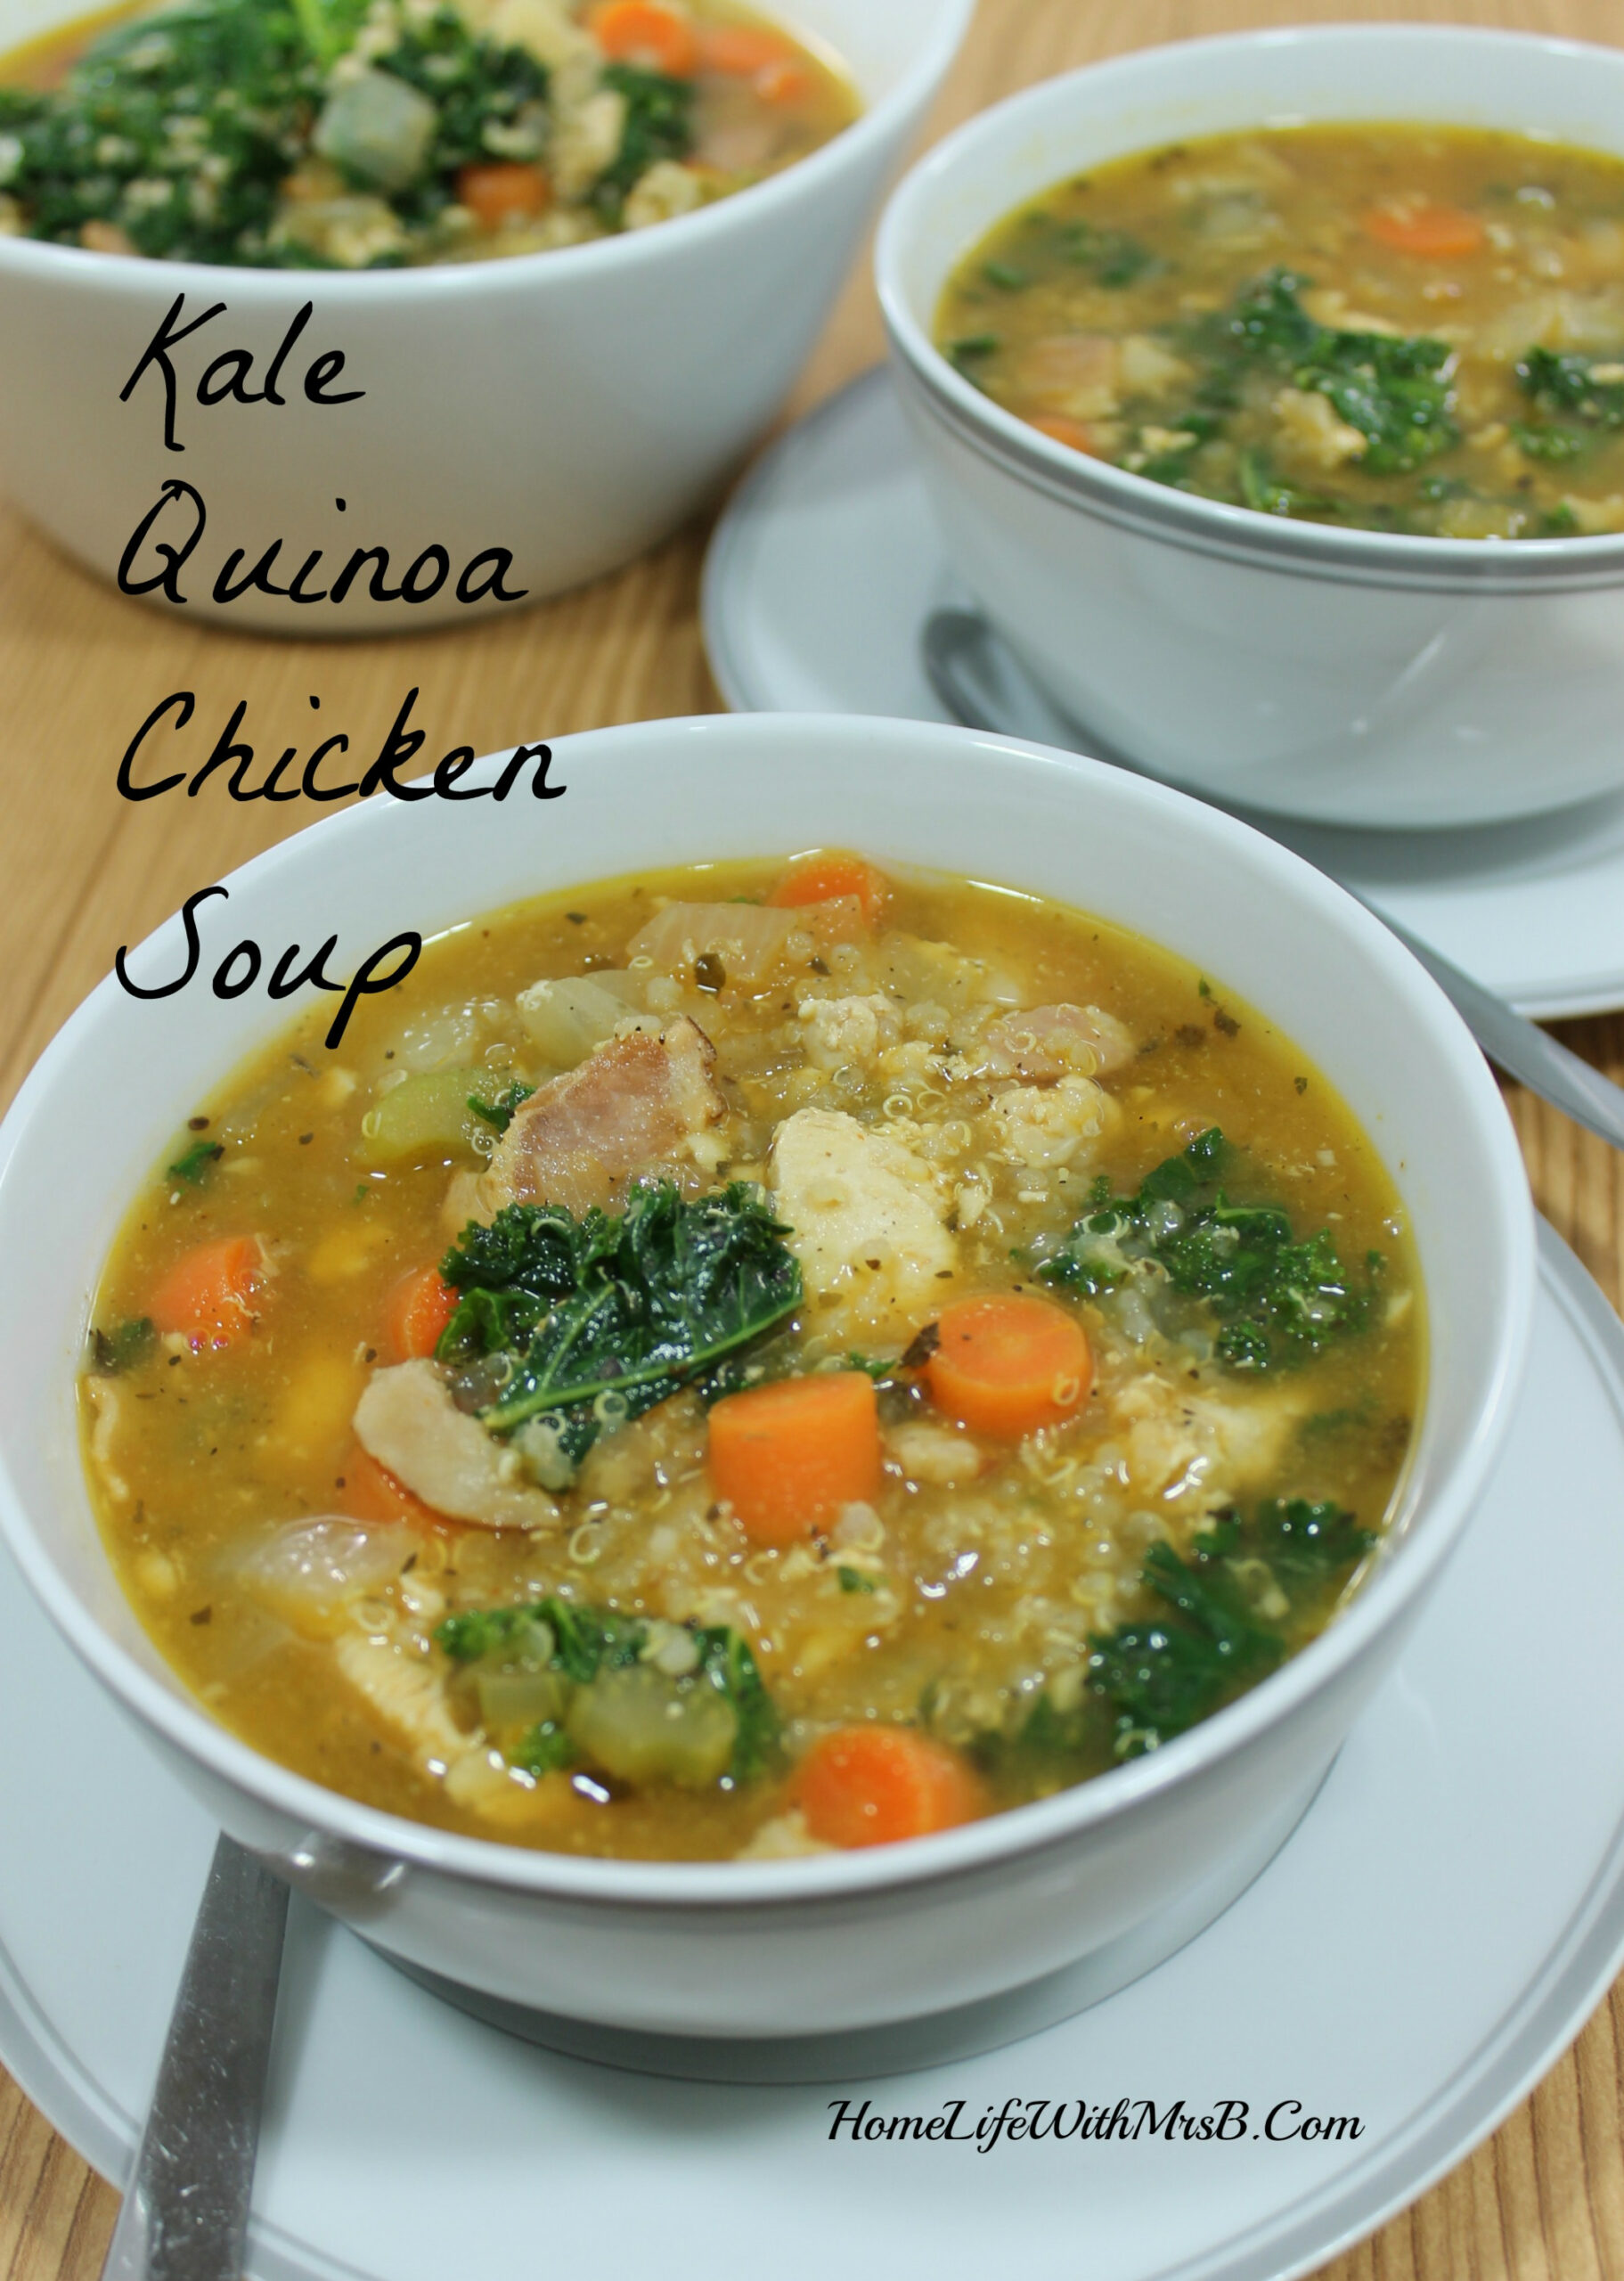 Kale Quinoa Chicken Soup - recipes kale and chicken